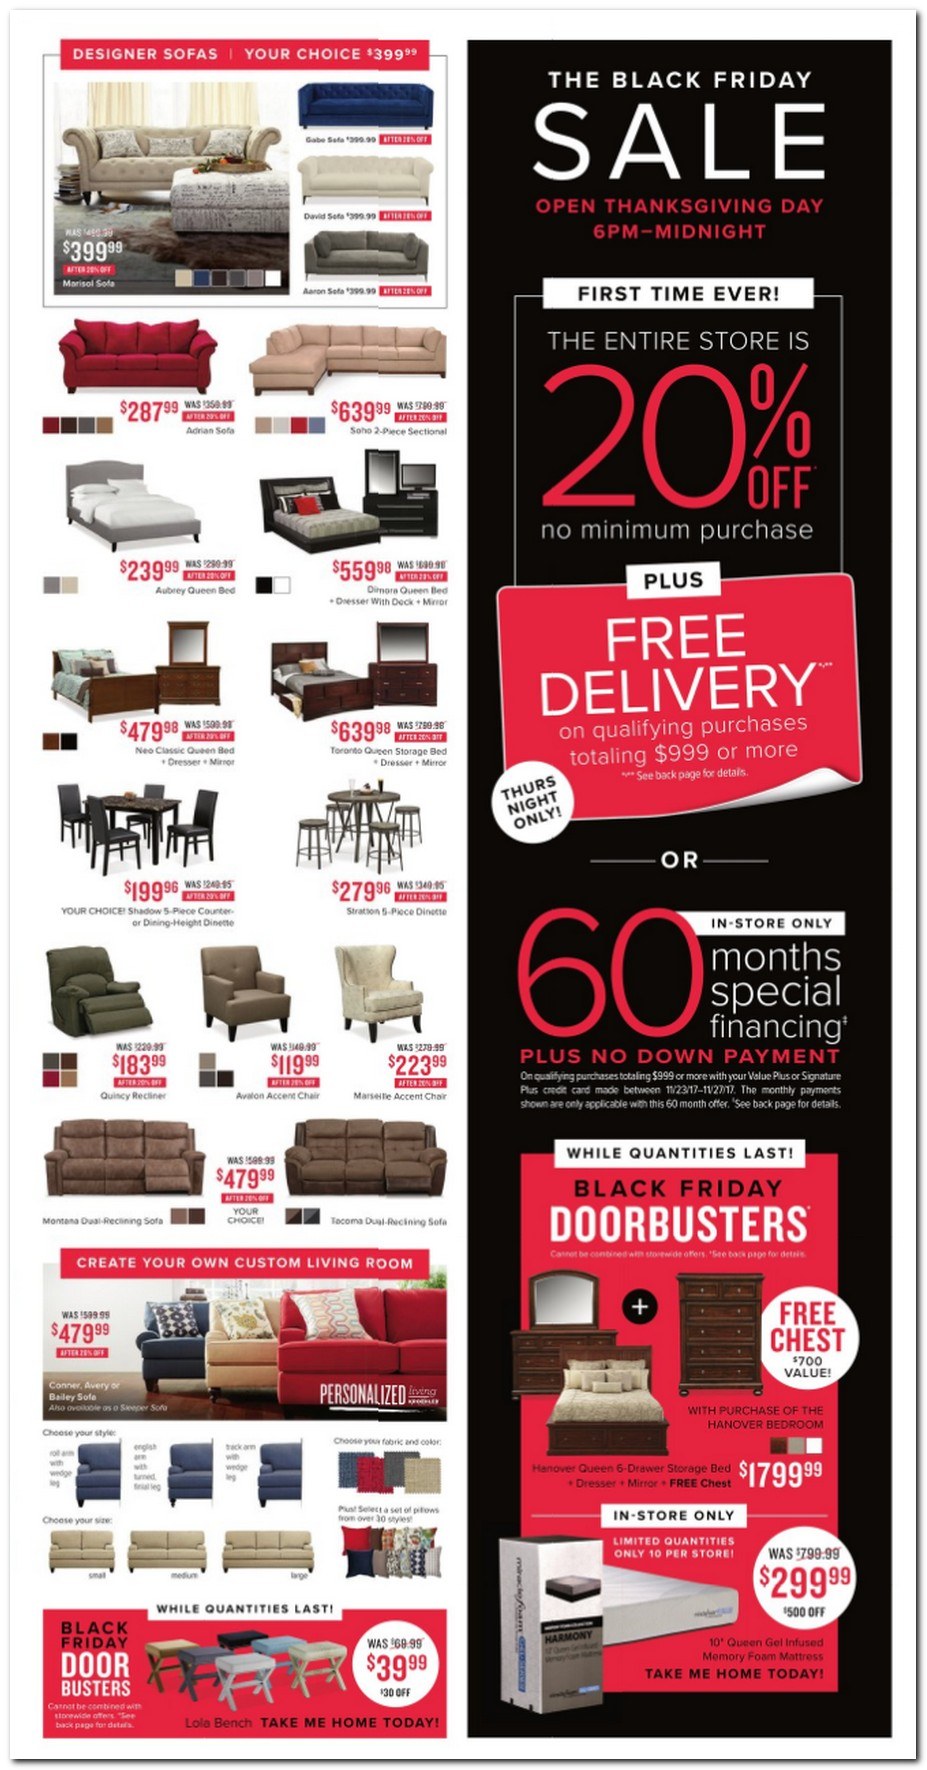 value city furniture black friday ads sales deals 2017 promo codes deals 2018 couponshy. Black Bedroom Furniture Sets. Home Design Ideas